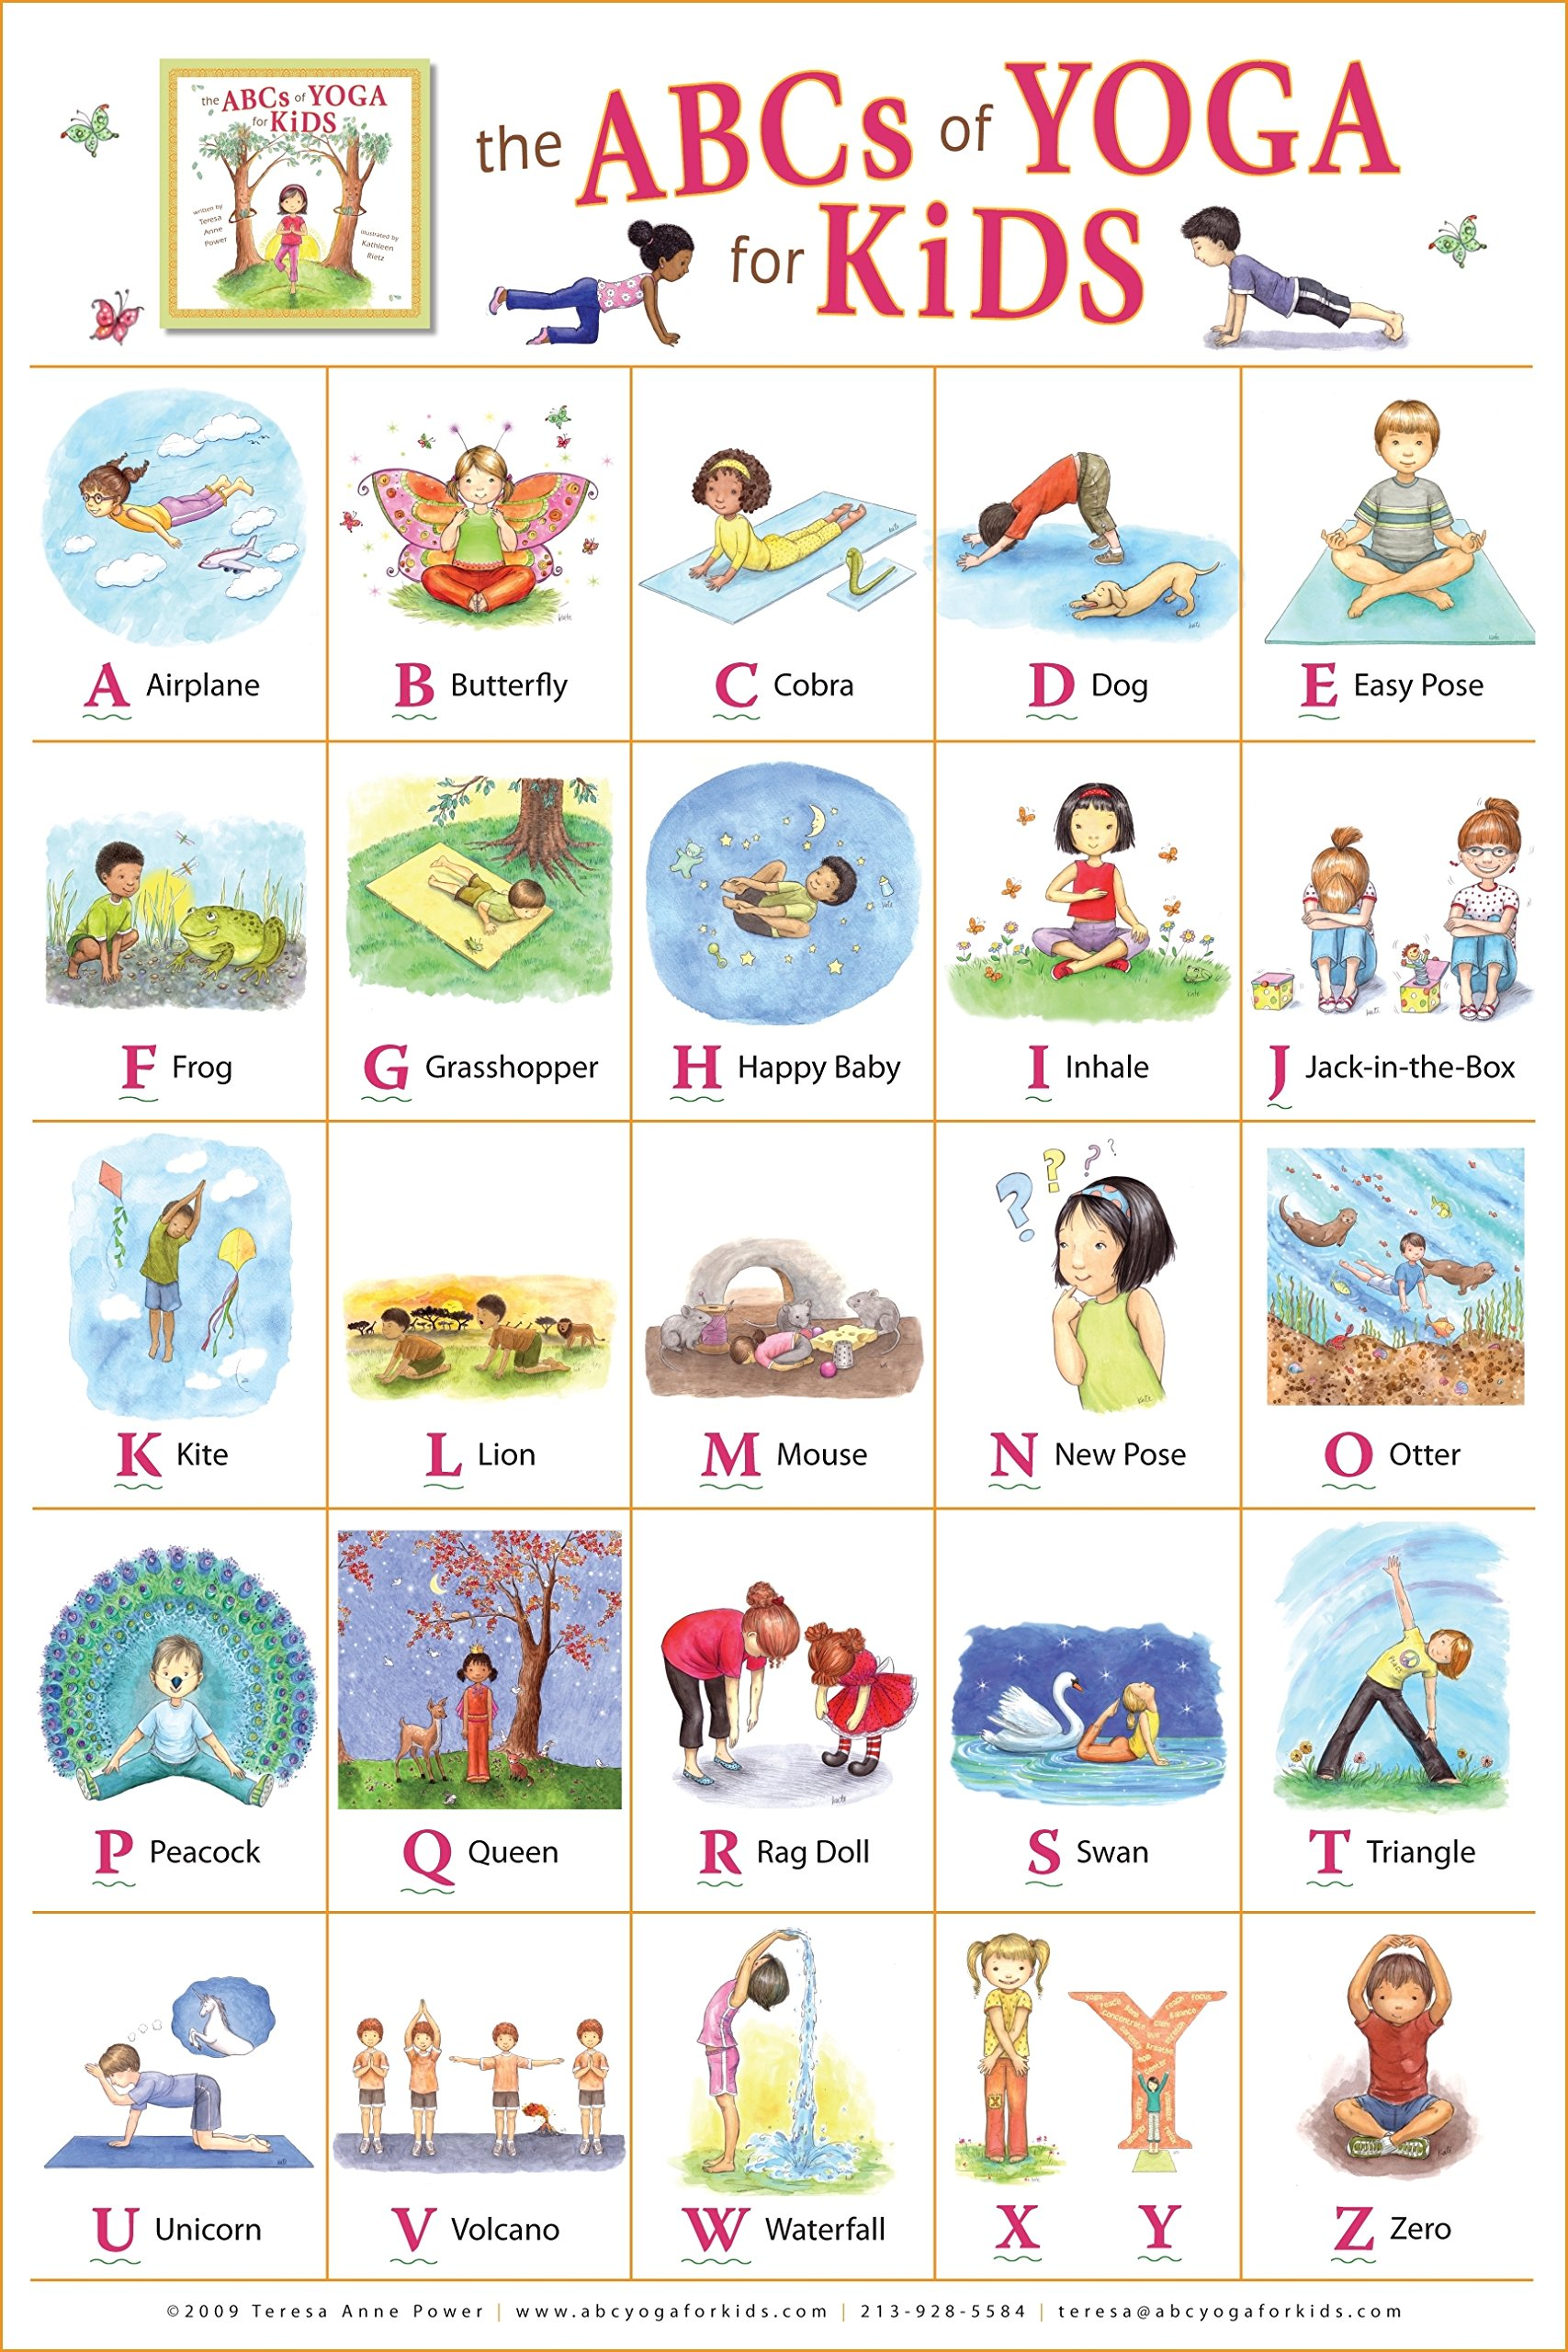 The abcs of yoga for kids poster teresa anne power kathleen rietz the abcs of yoga for kids poster teresa anne power kathleen rietz 9780982258712 amazon books altavistaventures Images